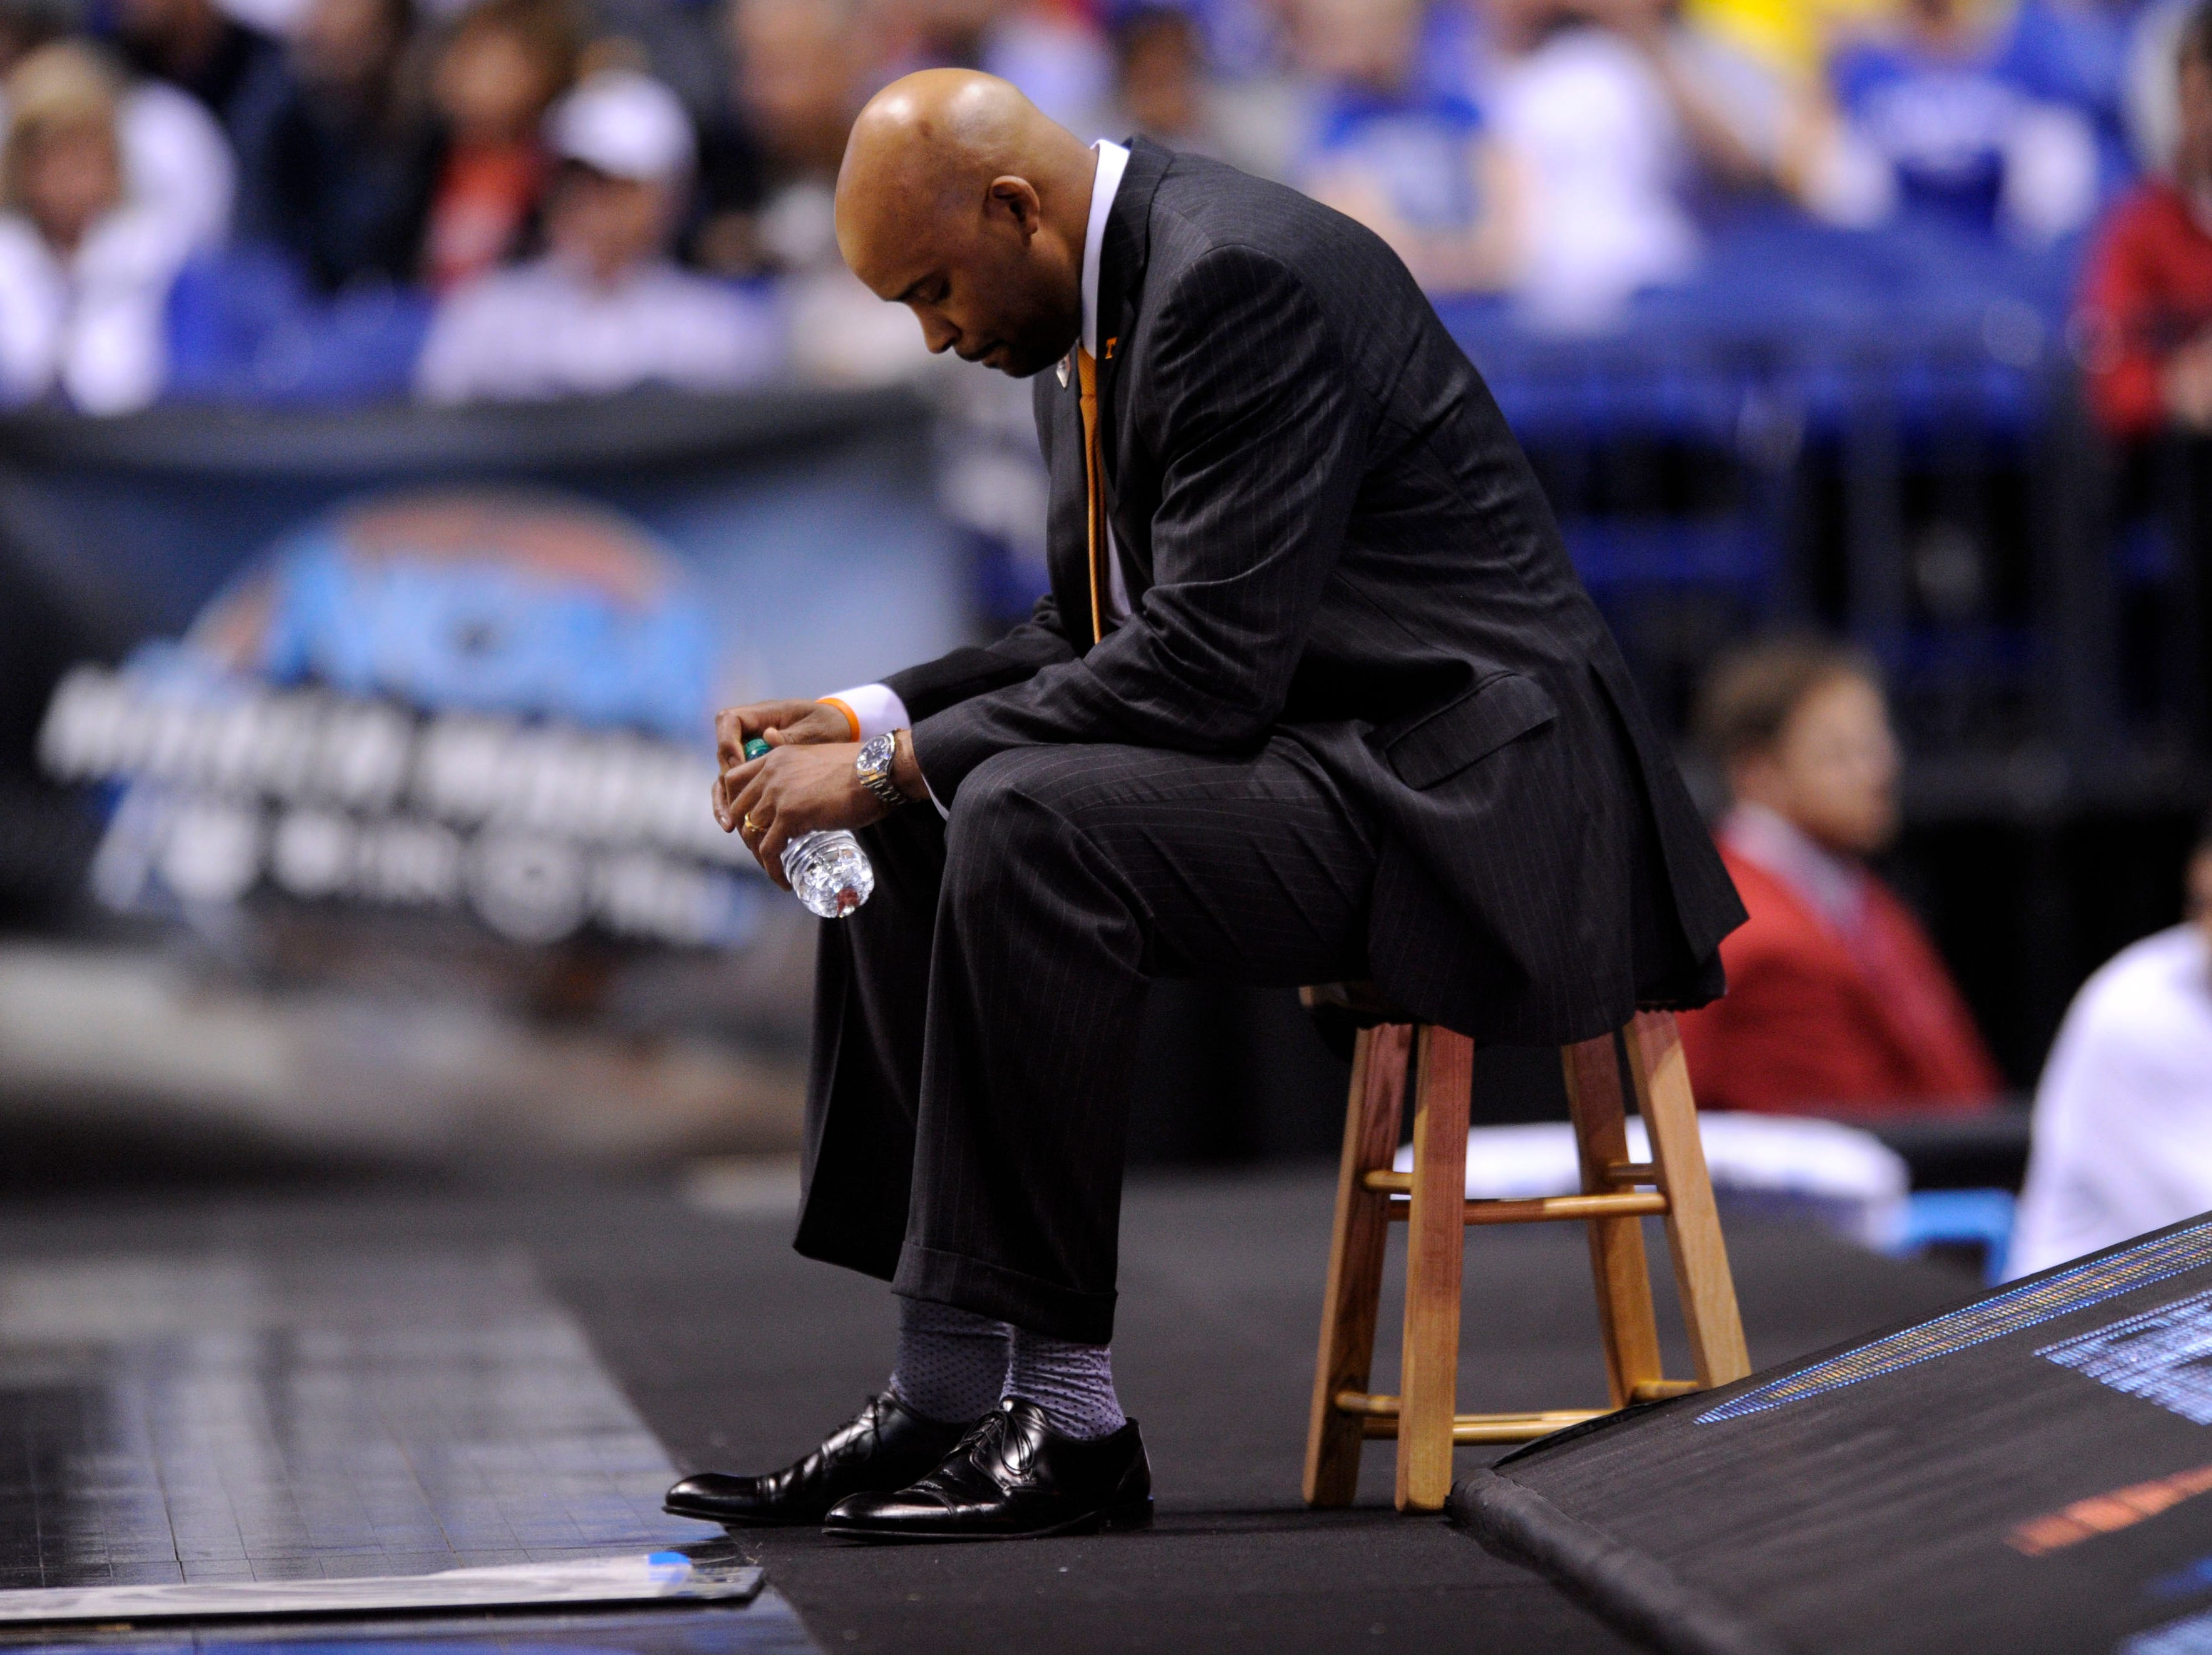 Tennessee head coach Cuonzo Martin sits near his team bench during an NCAA Sweet 16 game at Lucas Oil Stadium in Indianapolis, Ind. on Friday, March 28, 2014.